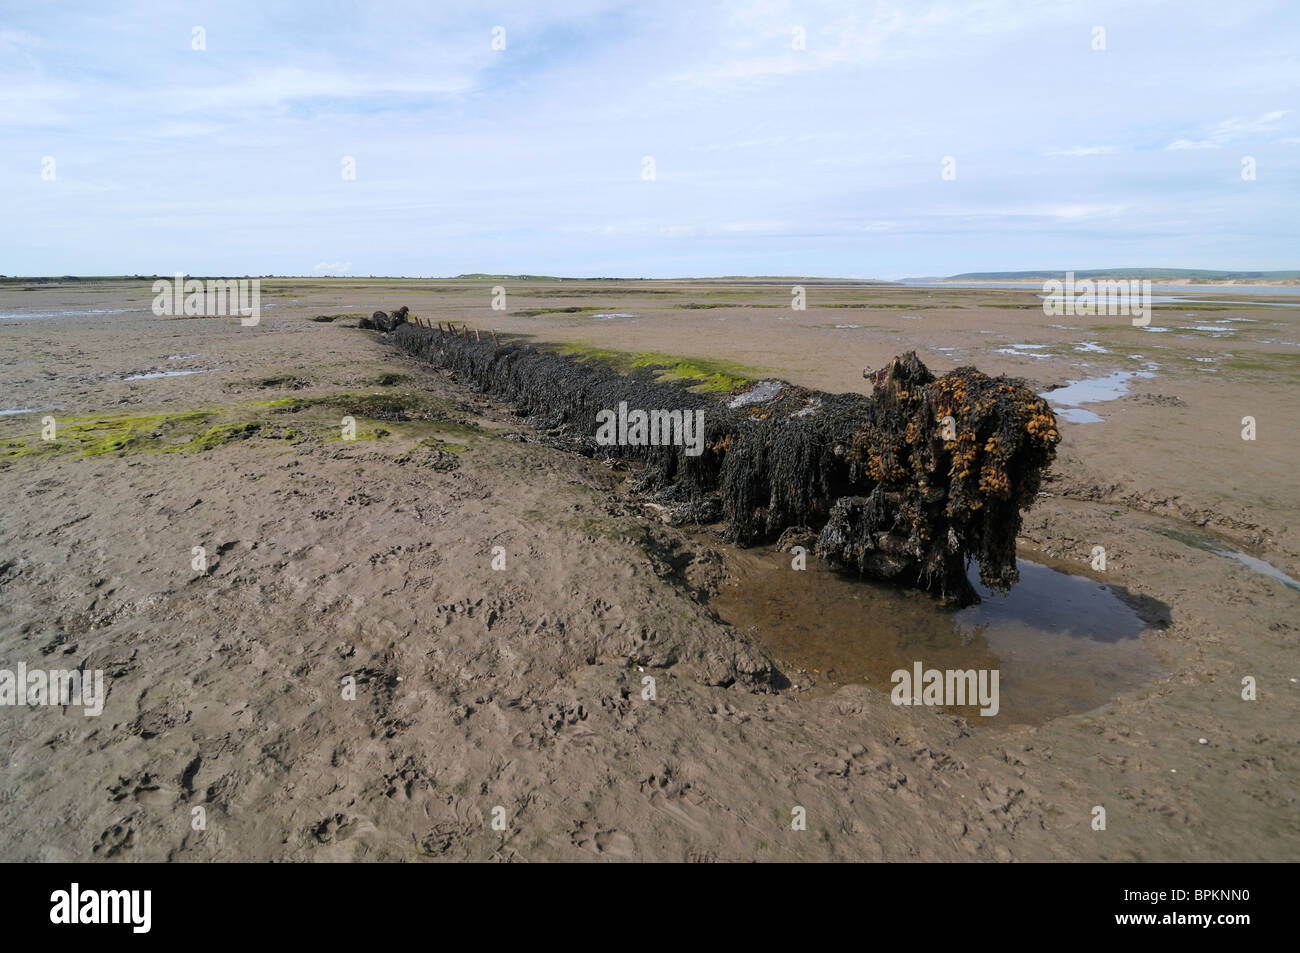 Keel of a wrecked ship, Appledore, Devon, UK - Stock Image